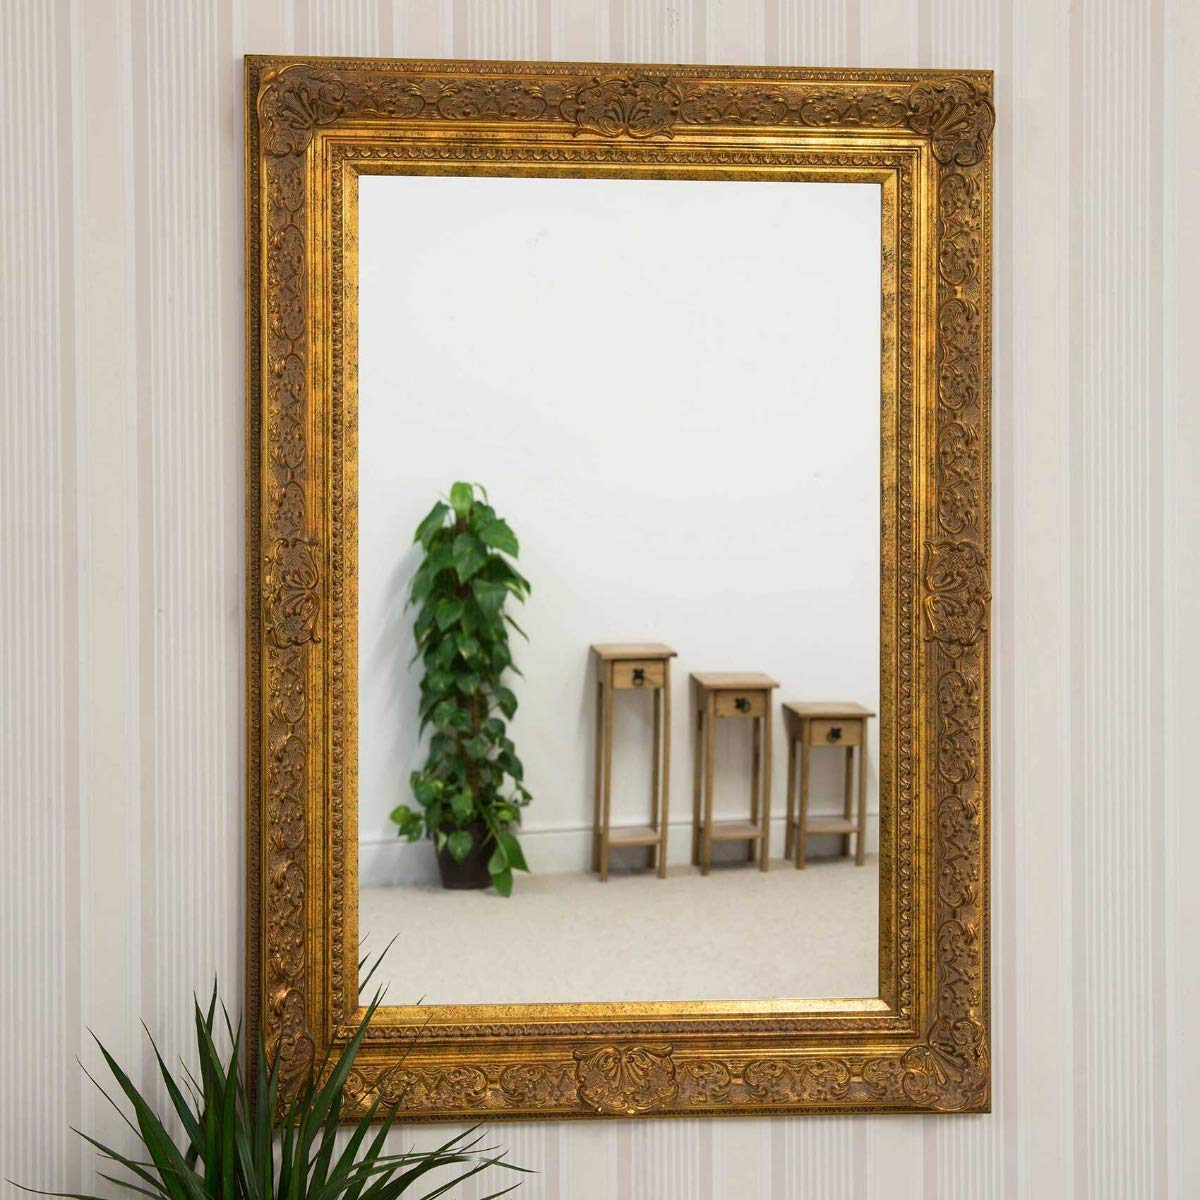 Frames by Post Kunstvolles Gold Spiegel antik Design Shabby chic ...